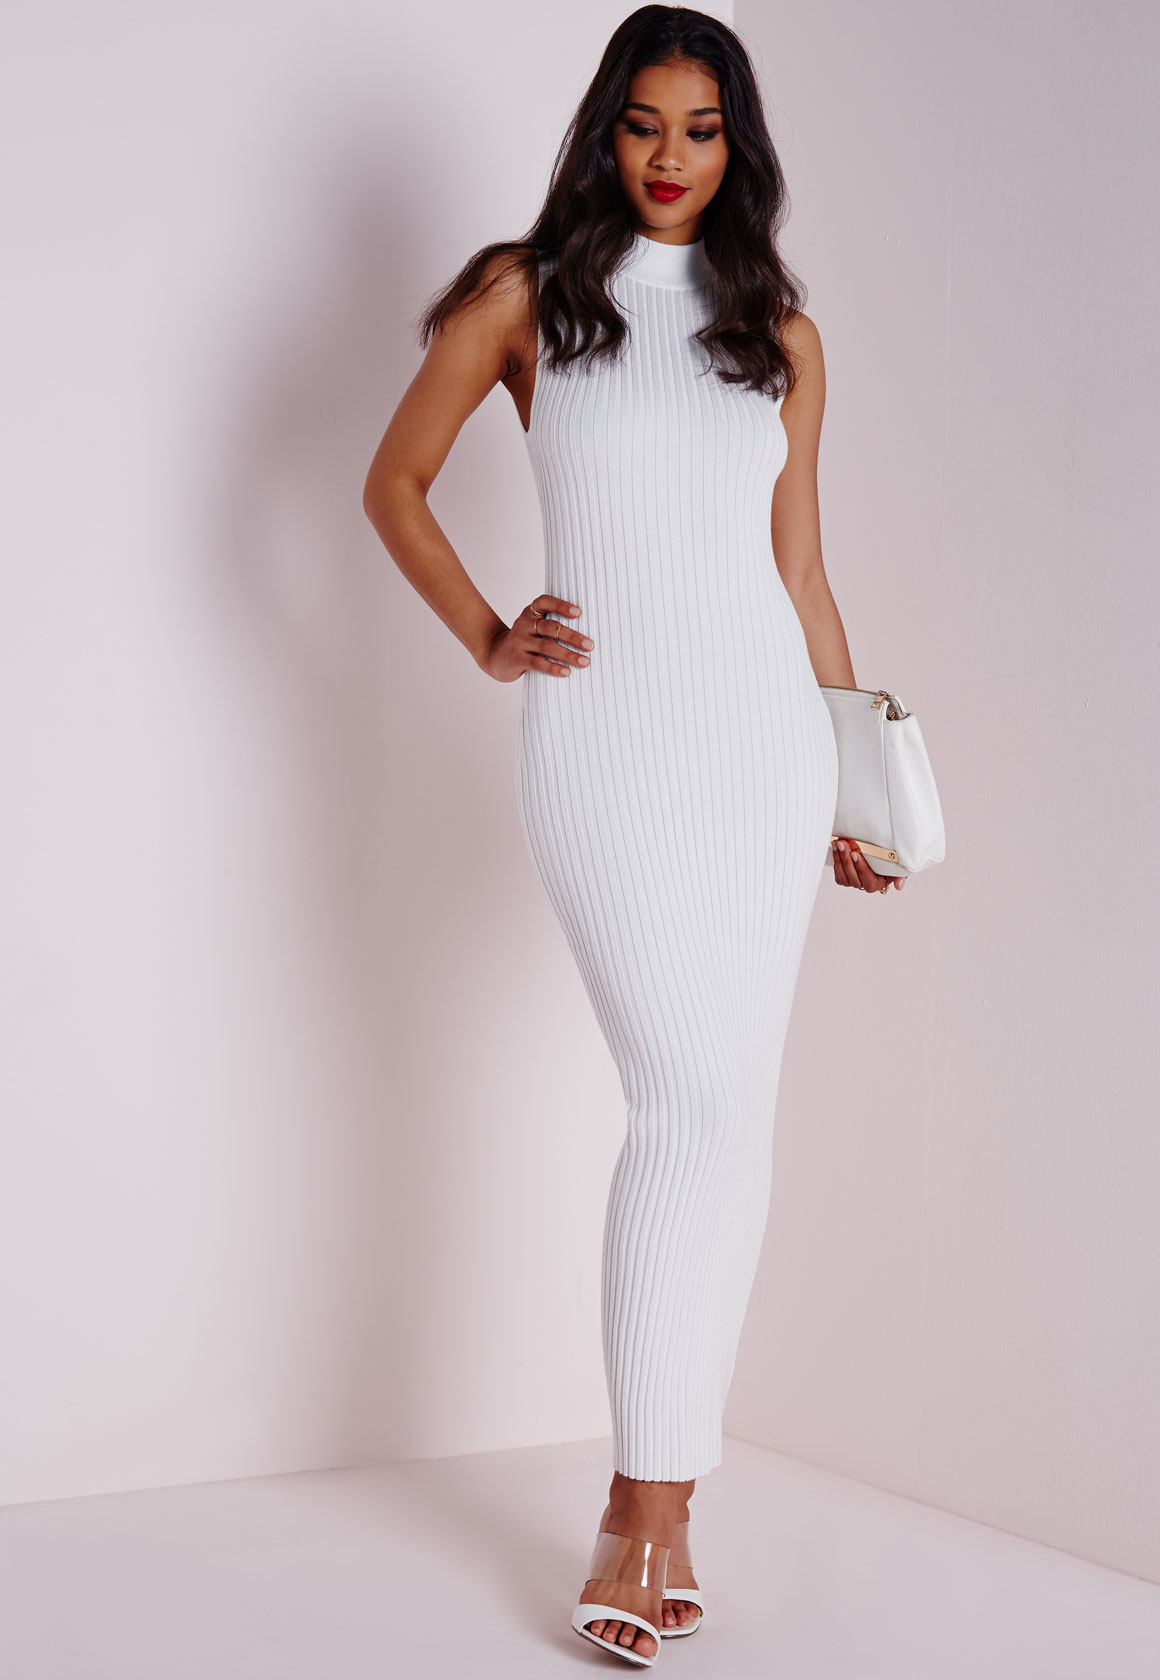 Lyst - Missguided Maxi Knitted Rib Dress White in White